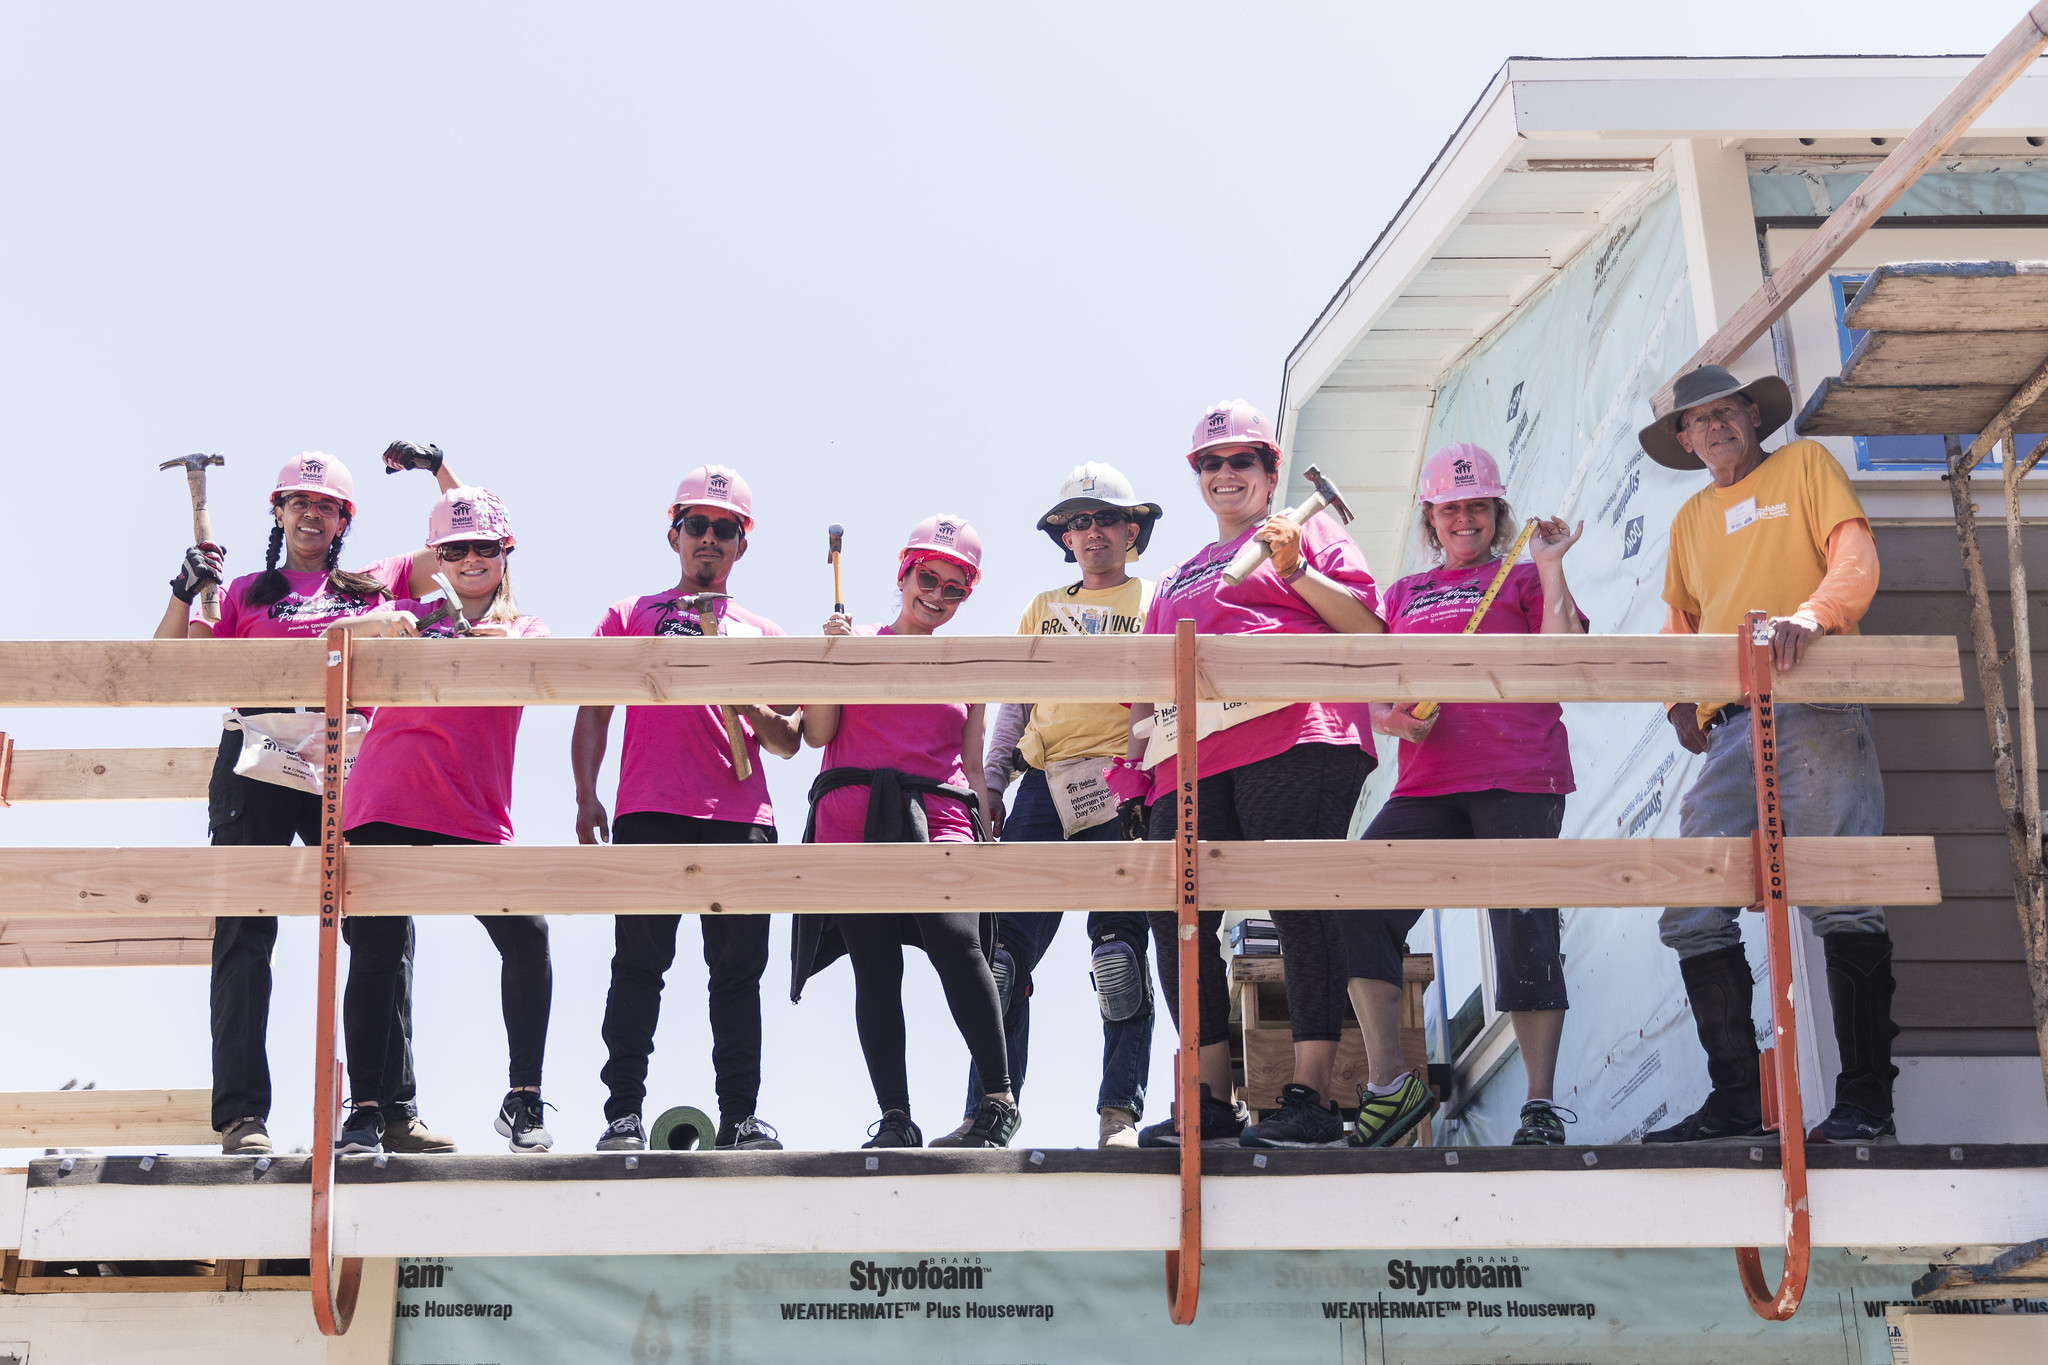 A group of volunteers standing on a roof behind a safety railing, smiling and holding hammers as they pose for a group photo.